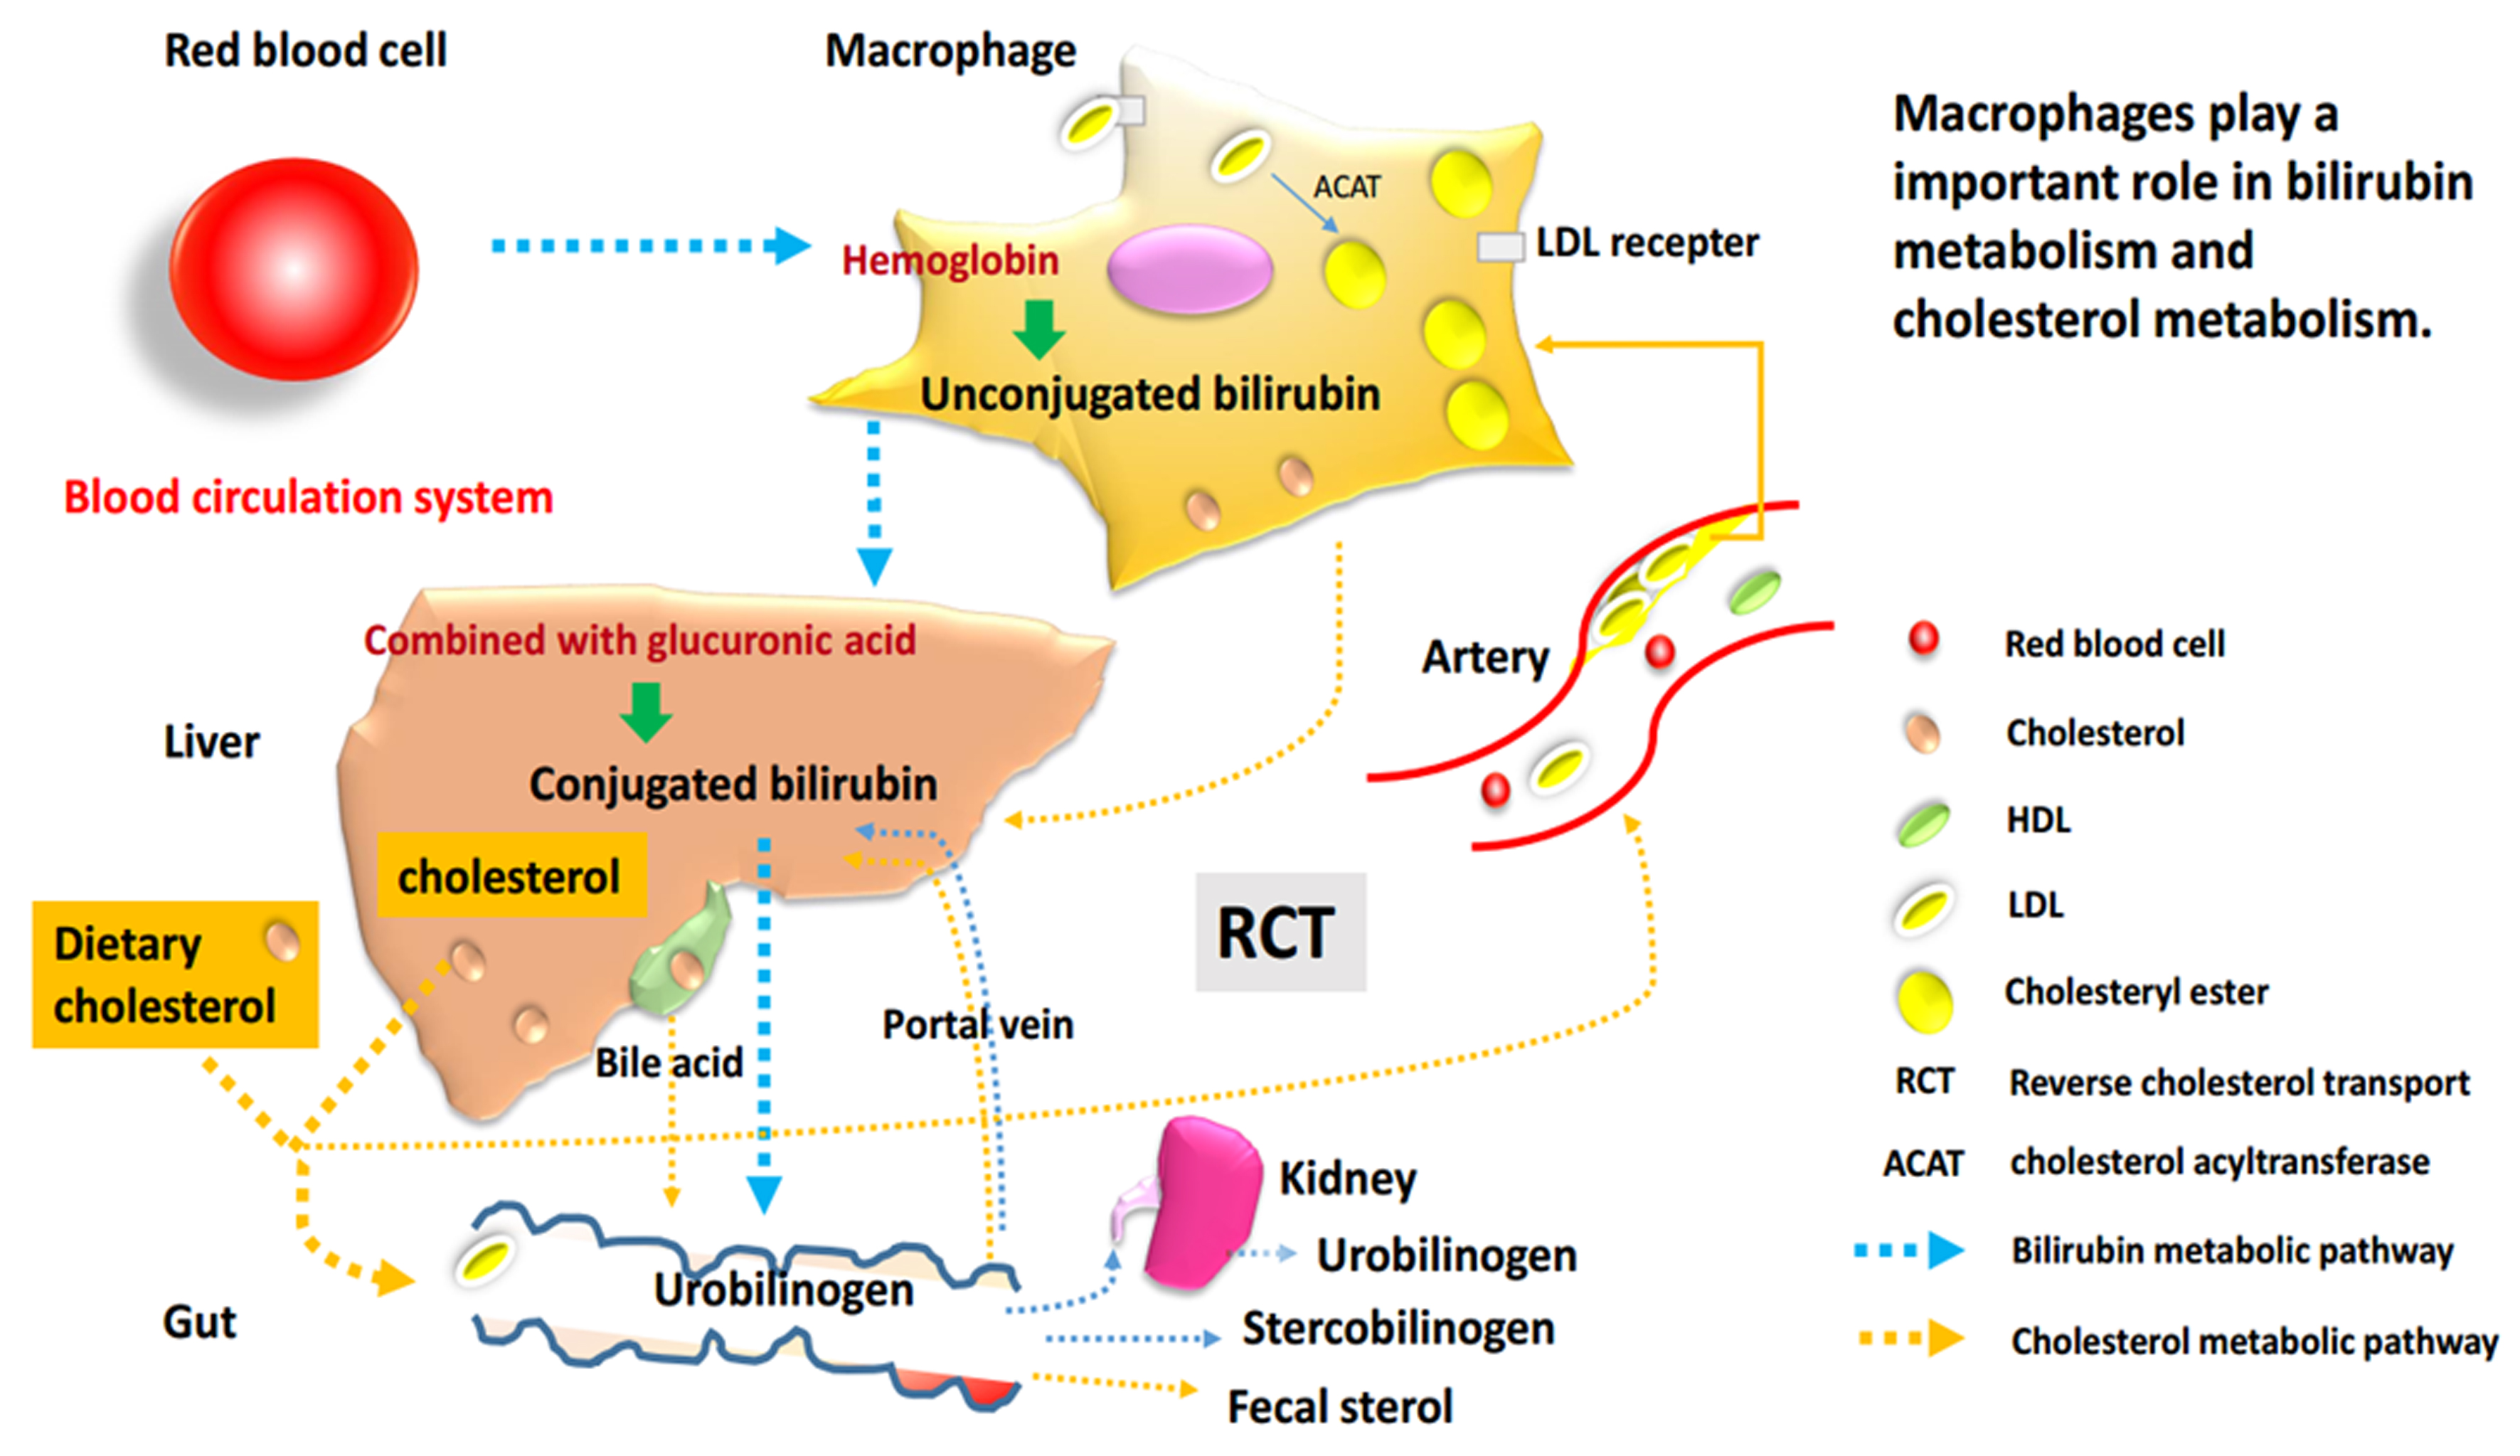 Macrophages essential cells for bilirubin metabolism and reverse transport of cholesterol with relevance for cardiovascular disease